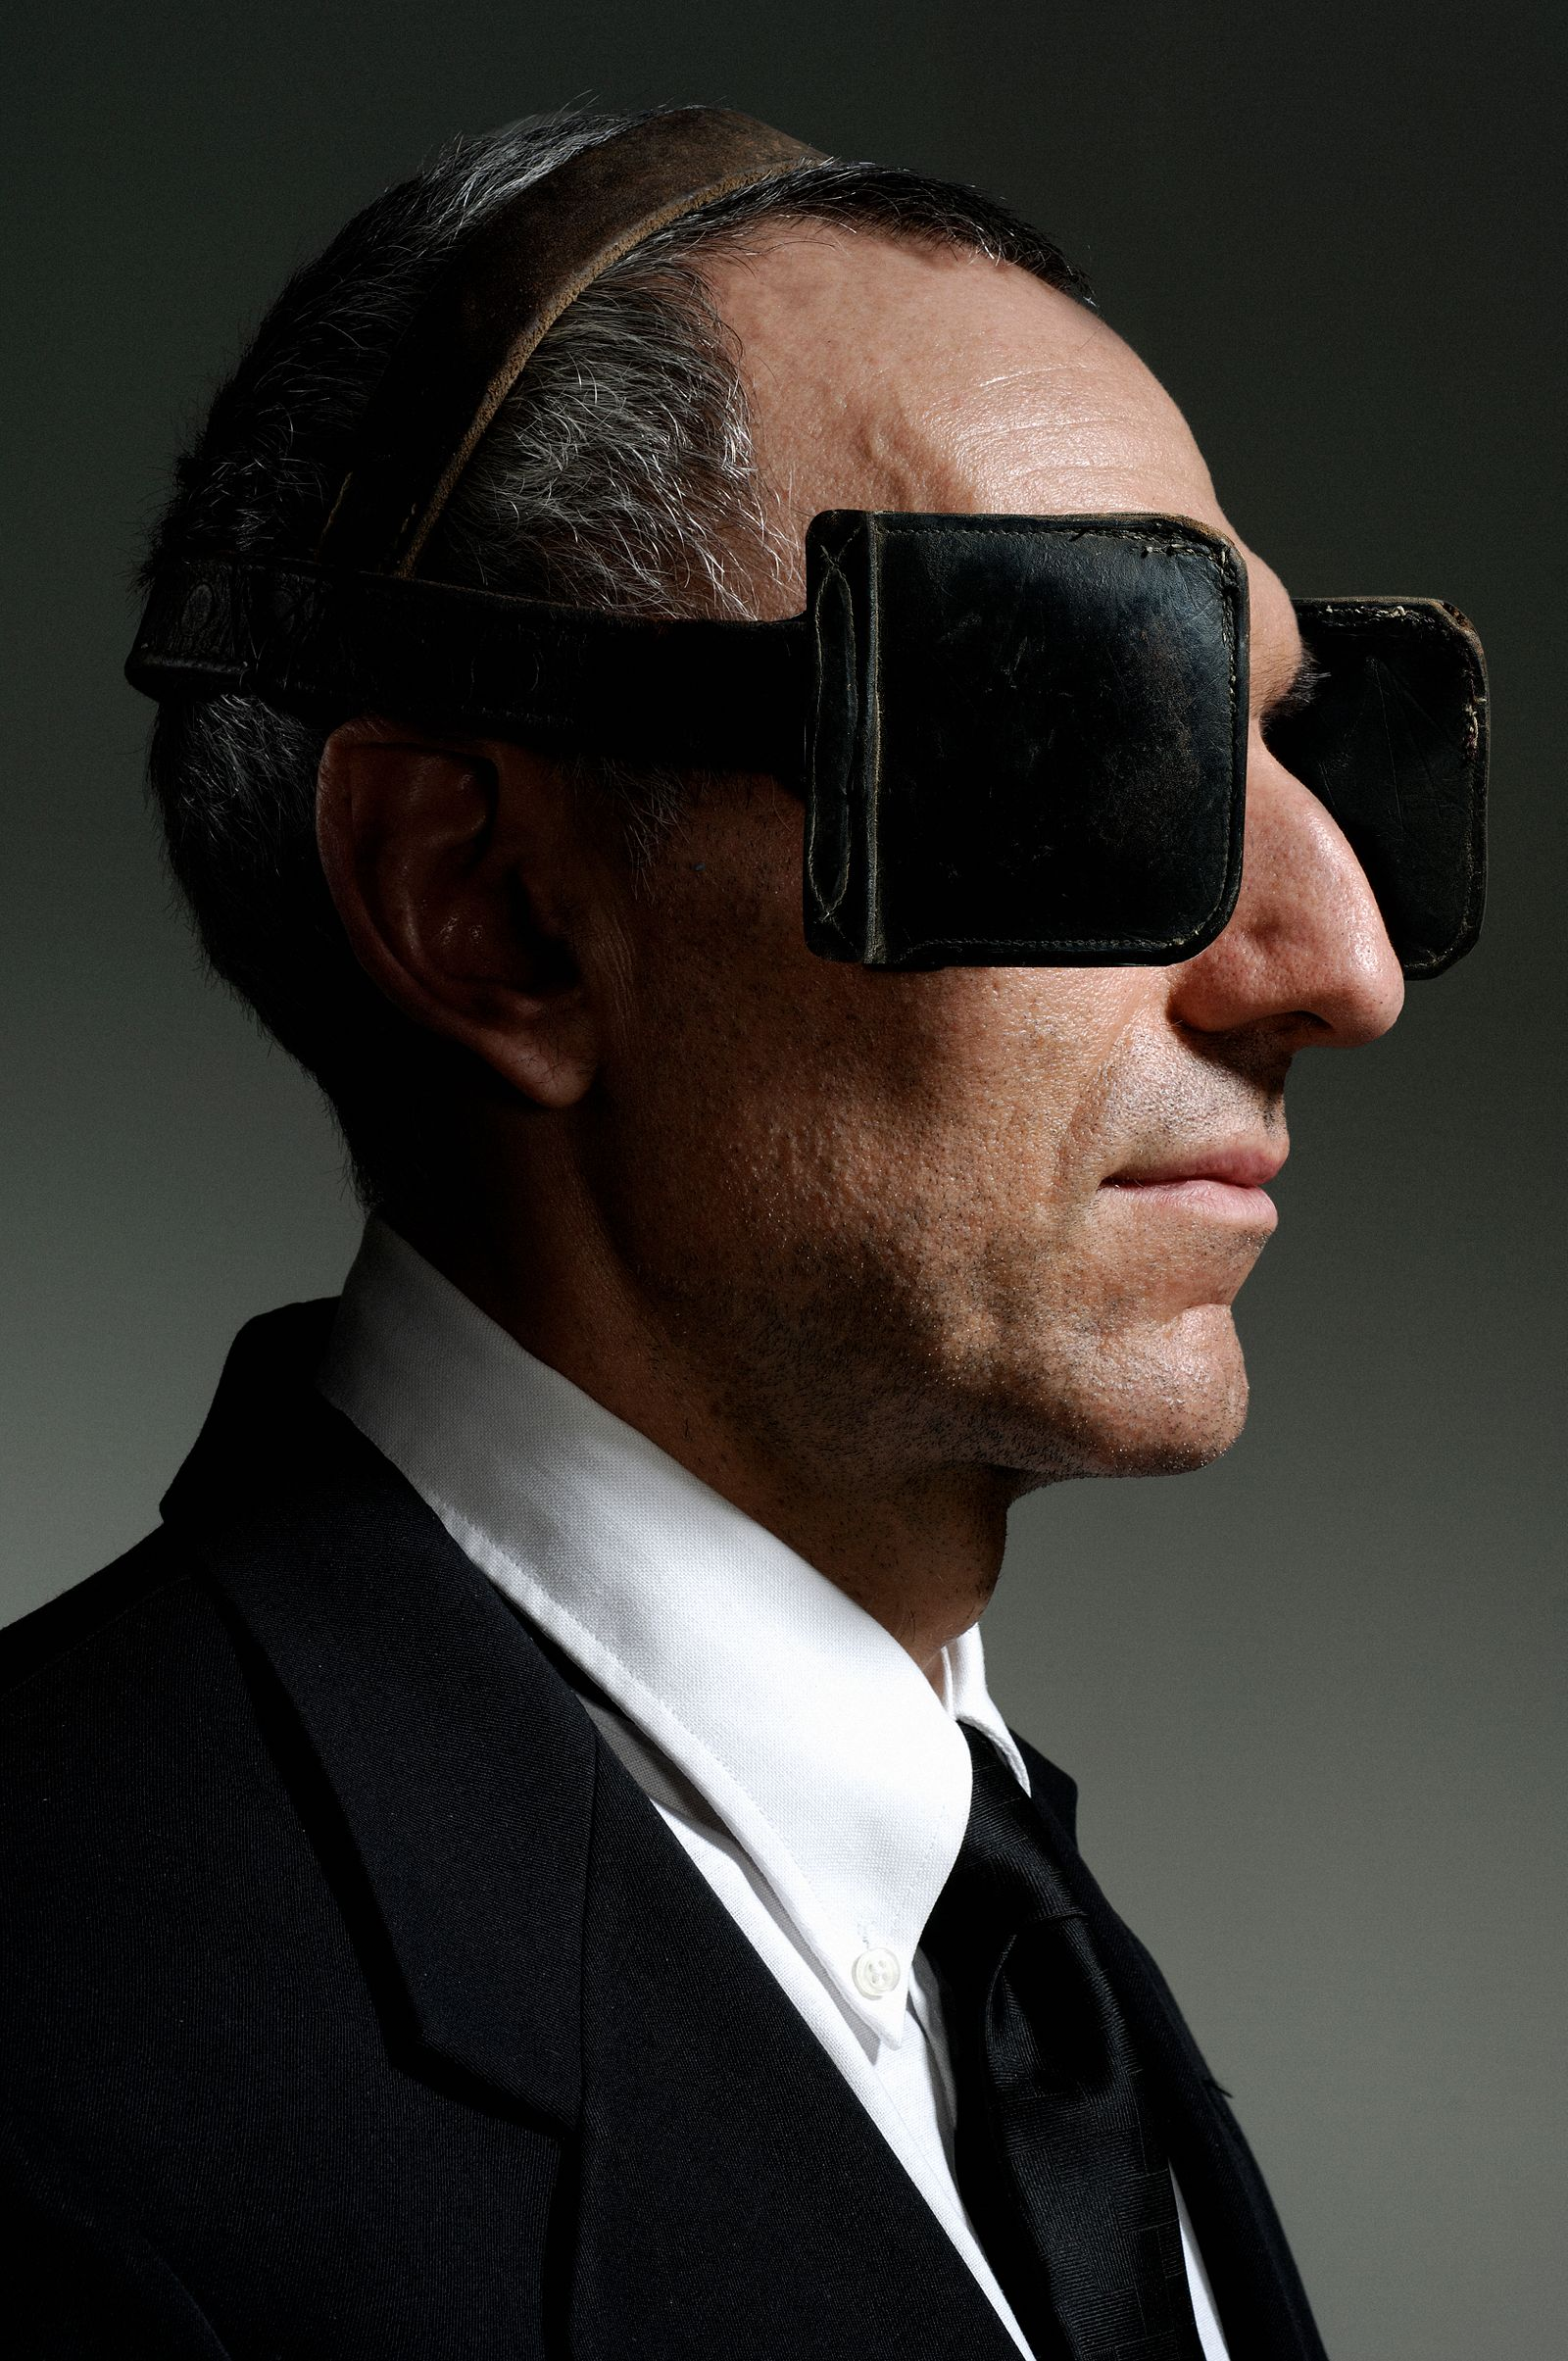 Mature businessman wearing blinkers, close-up, side view